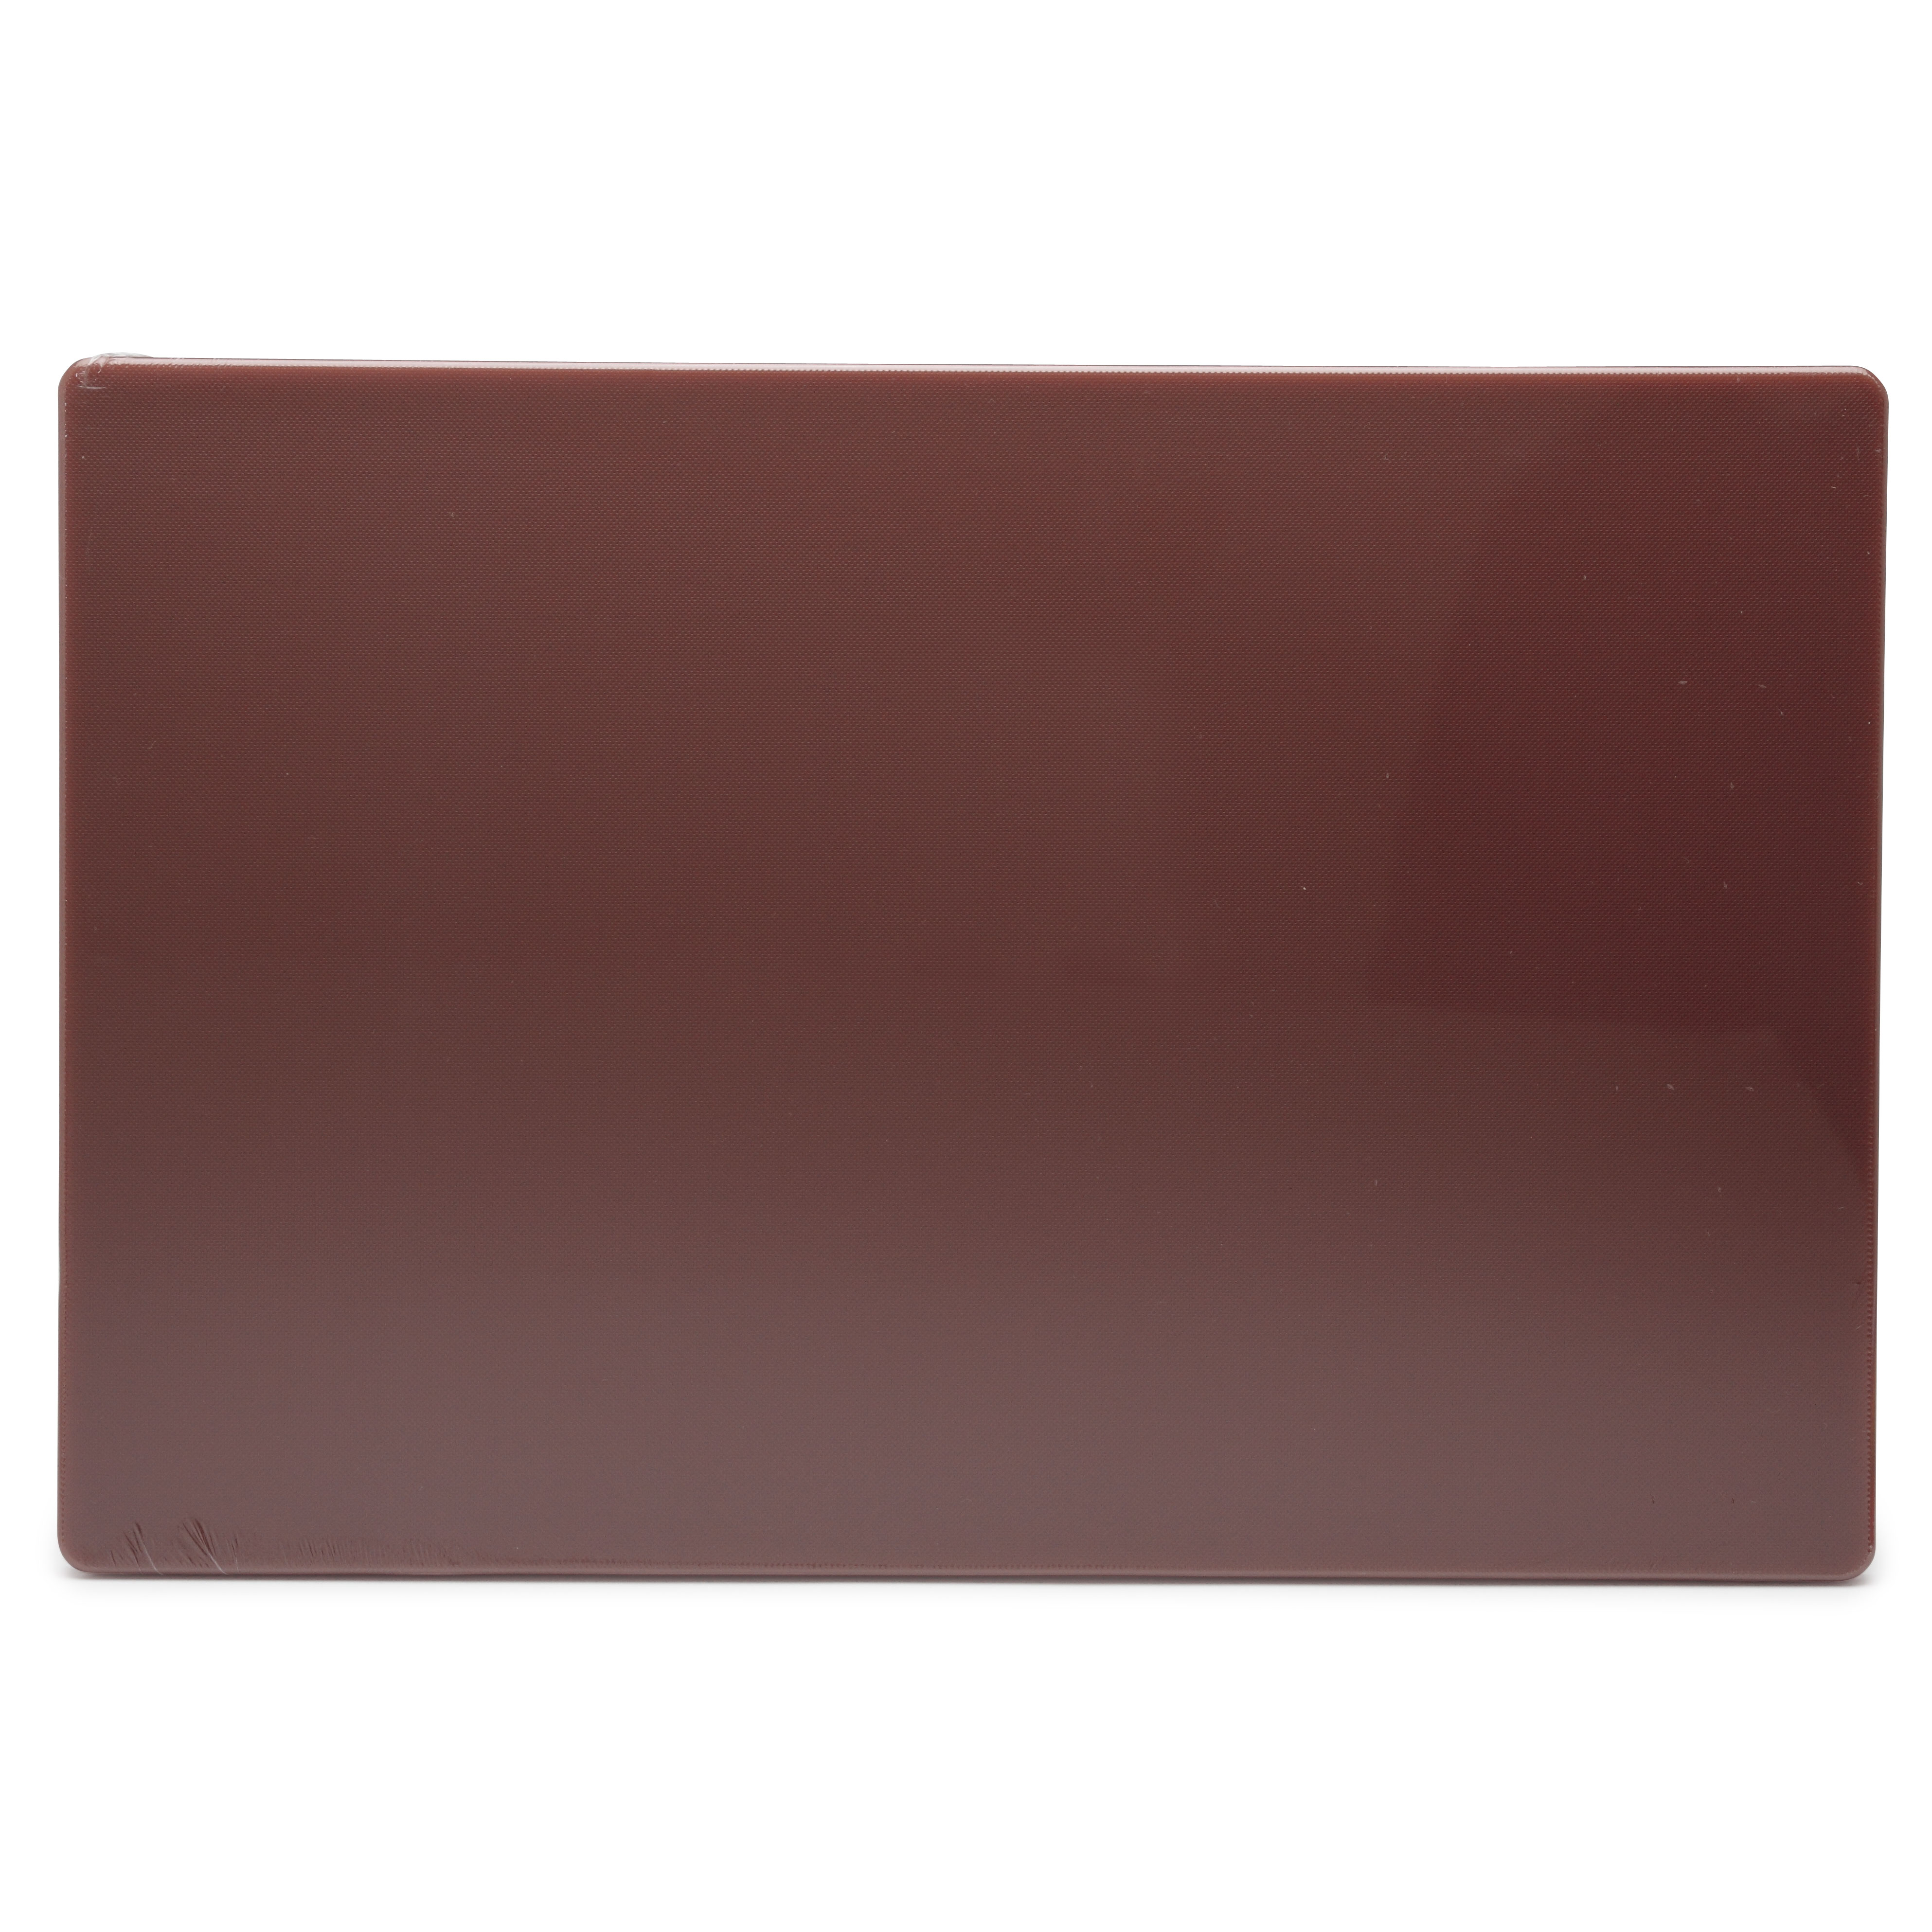 Royal Industries ROY CB 1520 BR cutting board, plastic